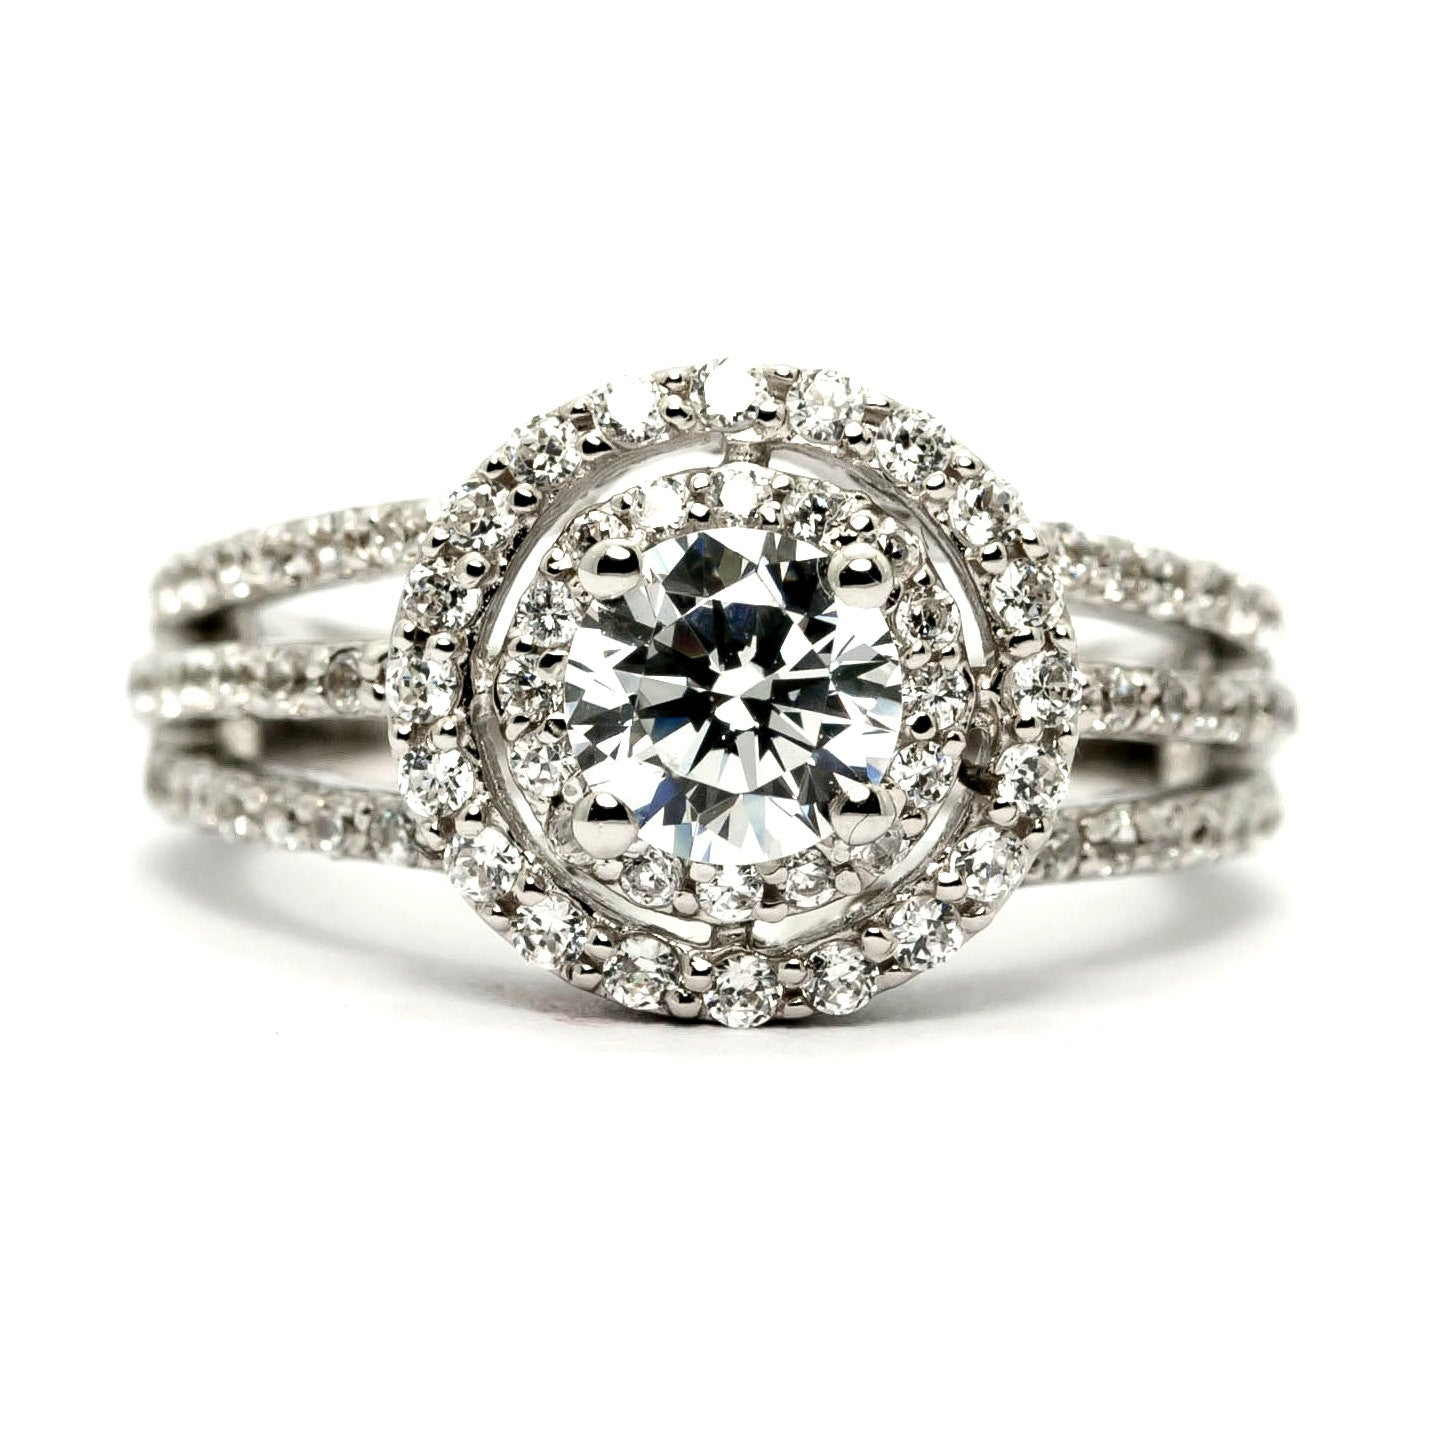 Semi Mount For 1 Carat Double Halo Center Stone Engagement Ring, Unique Triple Shank Ring with .82 Carat Diamonds - Y11295